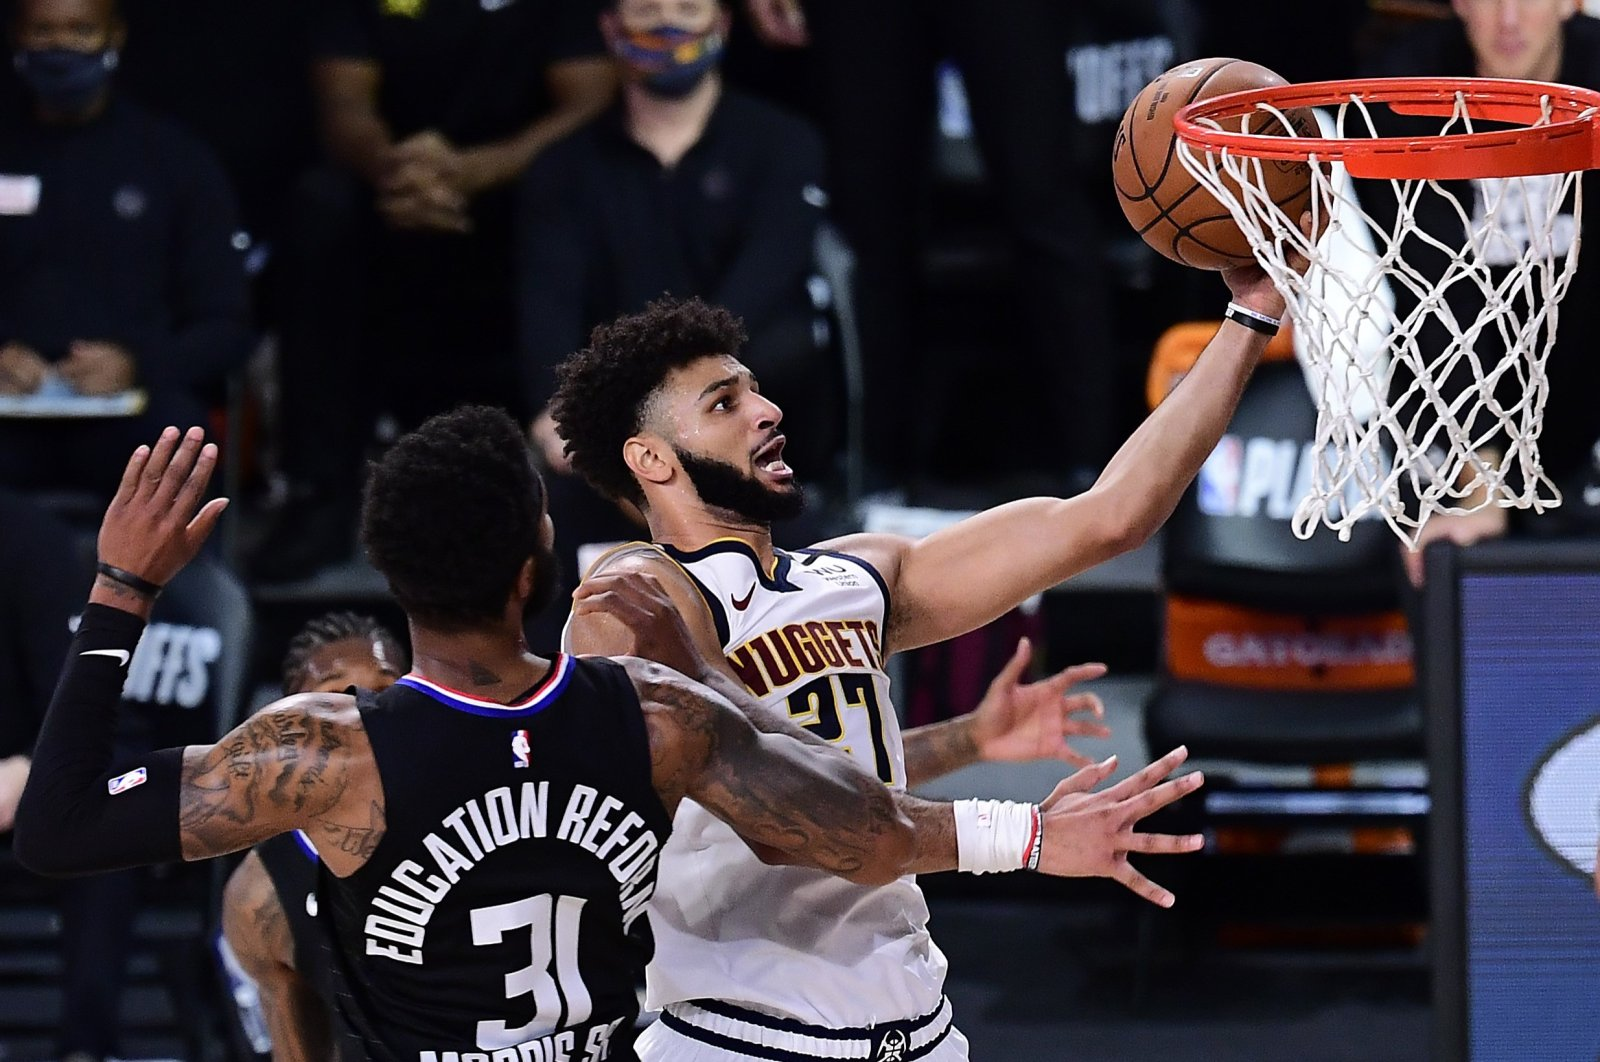 Denver Nuggets' Jamal Murray (R) drives to the basket against LA Clippers' Marcus Morris during an NBA game in Lake Buena Vista, Florida, U.S., Sept. 15, 2020. (AFP Photo) == FOR NEWSPAPERS, INTERNET, TELCOS & TELEVISION USE ONLY ==